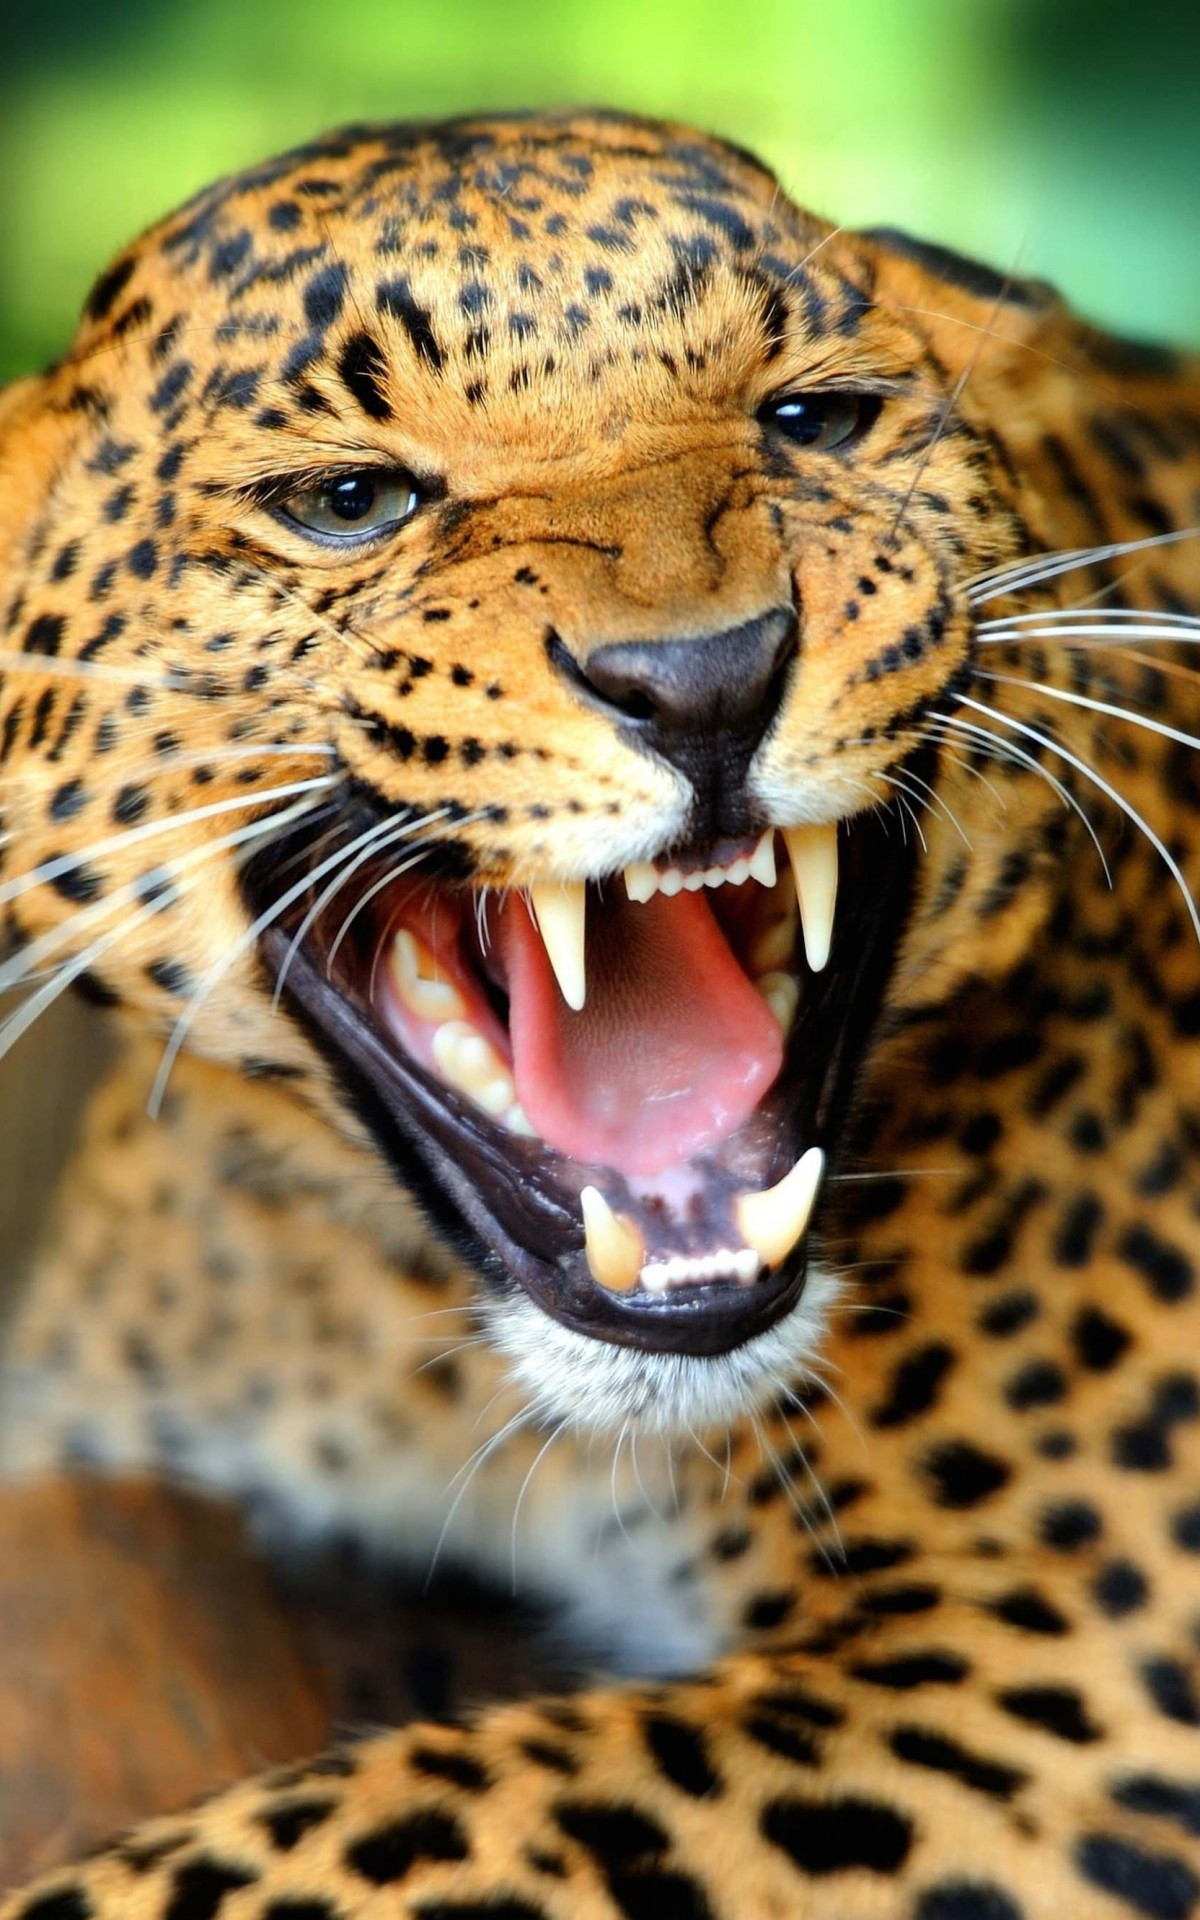 Growling Leopard Wallpaper for Amazon Kindle Fire HDX